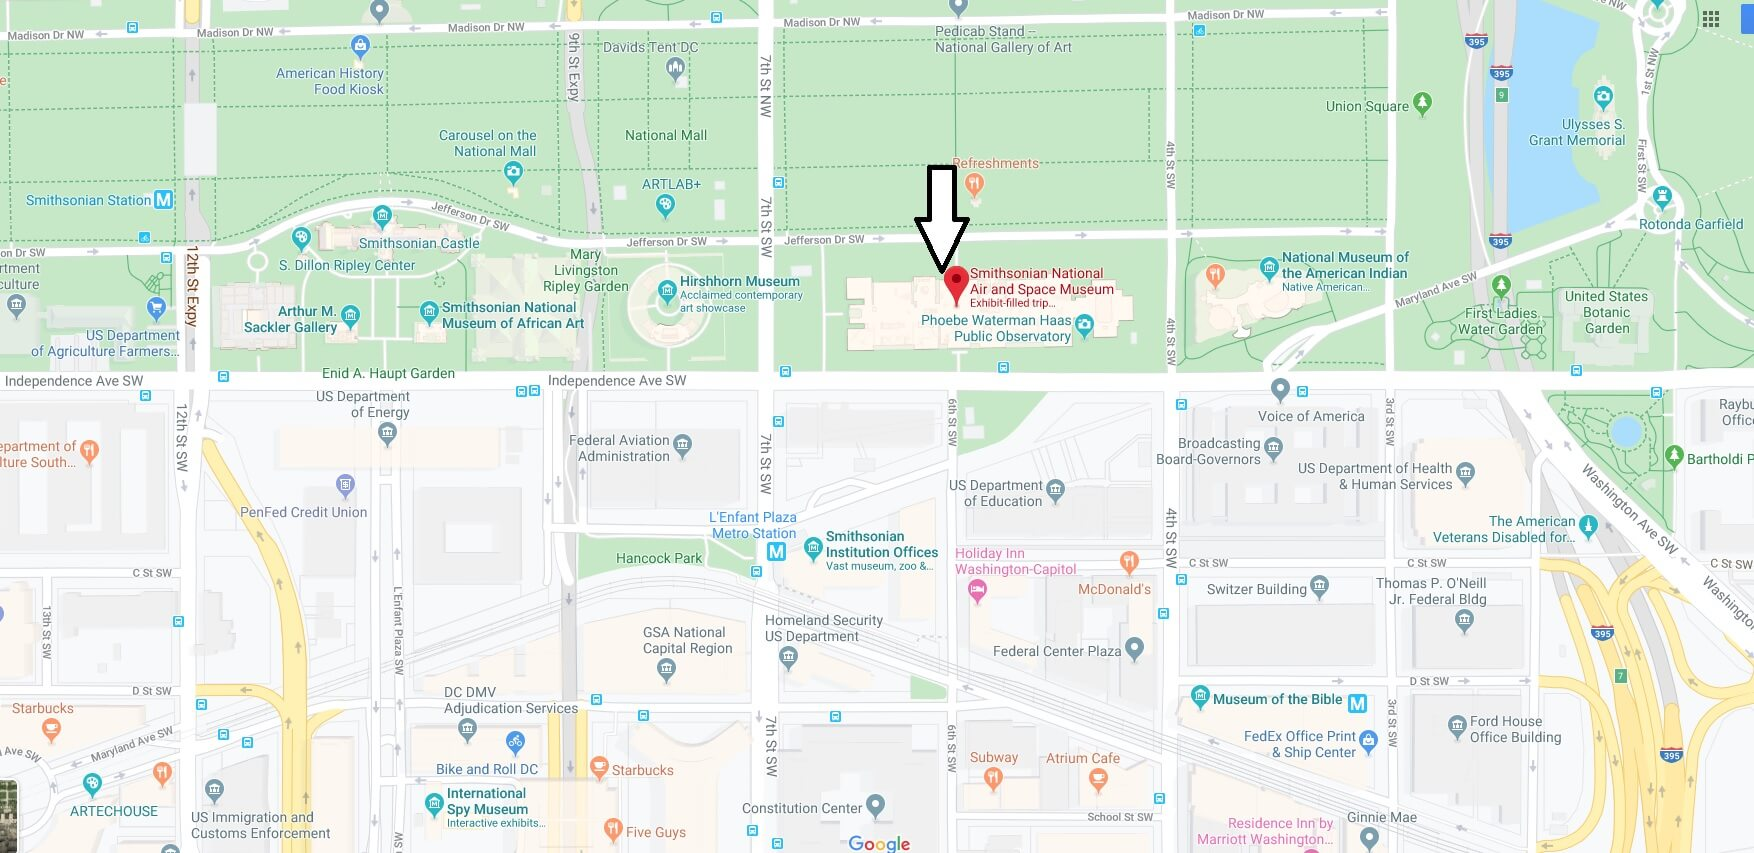 Where is Smithsonian National Air and Space Museum? Are there 2 Air and Space museums?